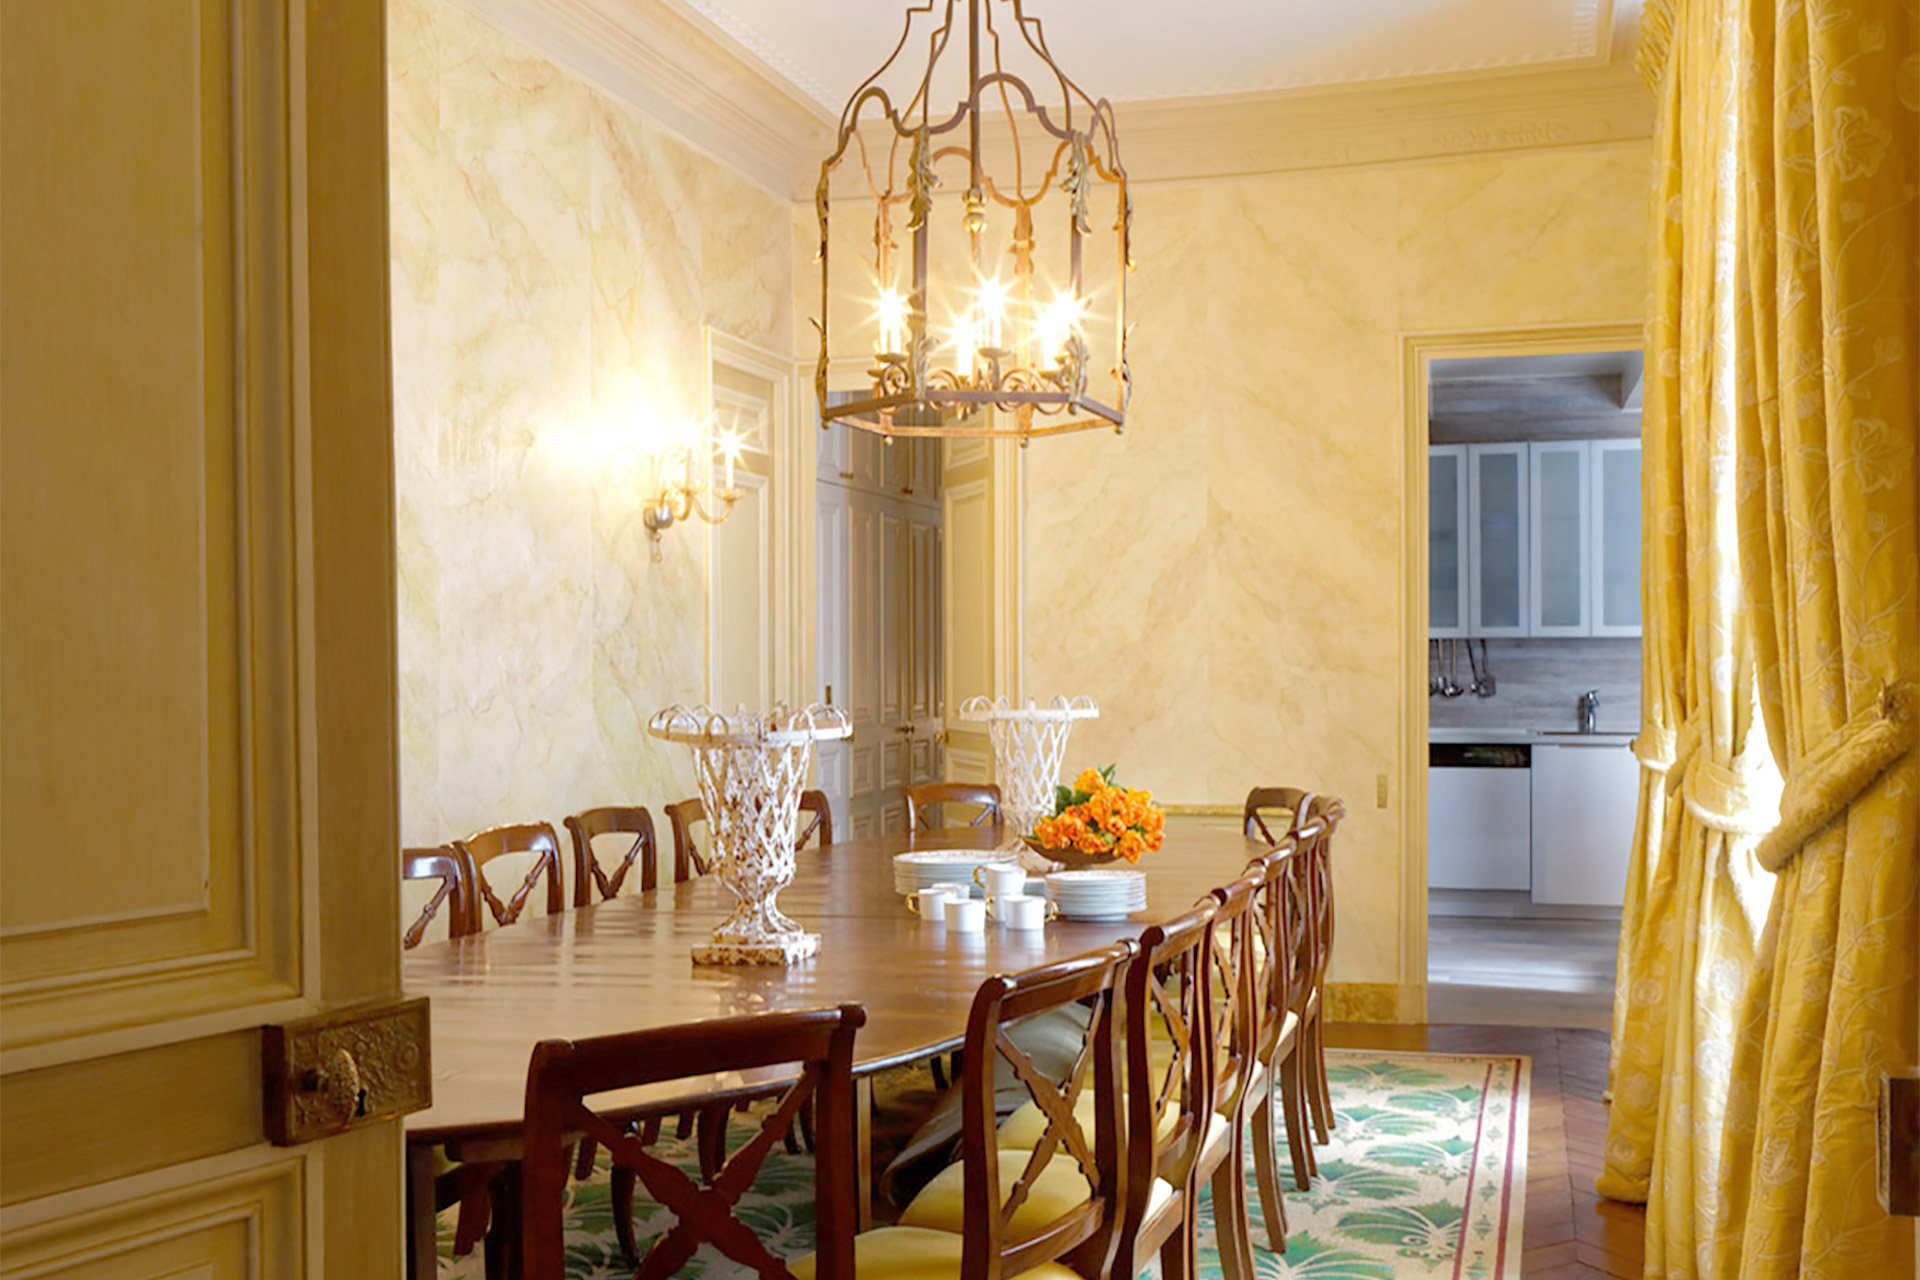 Sunlight streams through the large French windows in the dining room in the Bailly Paris vacation rental